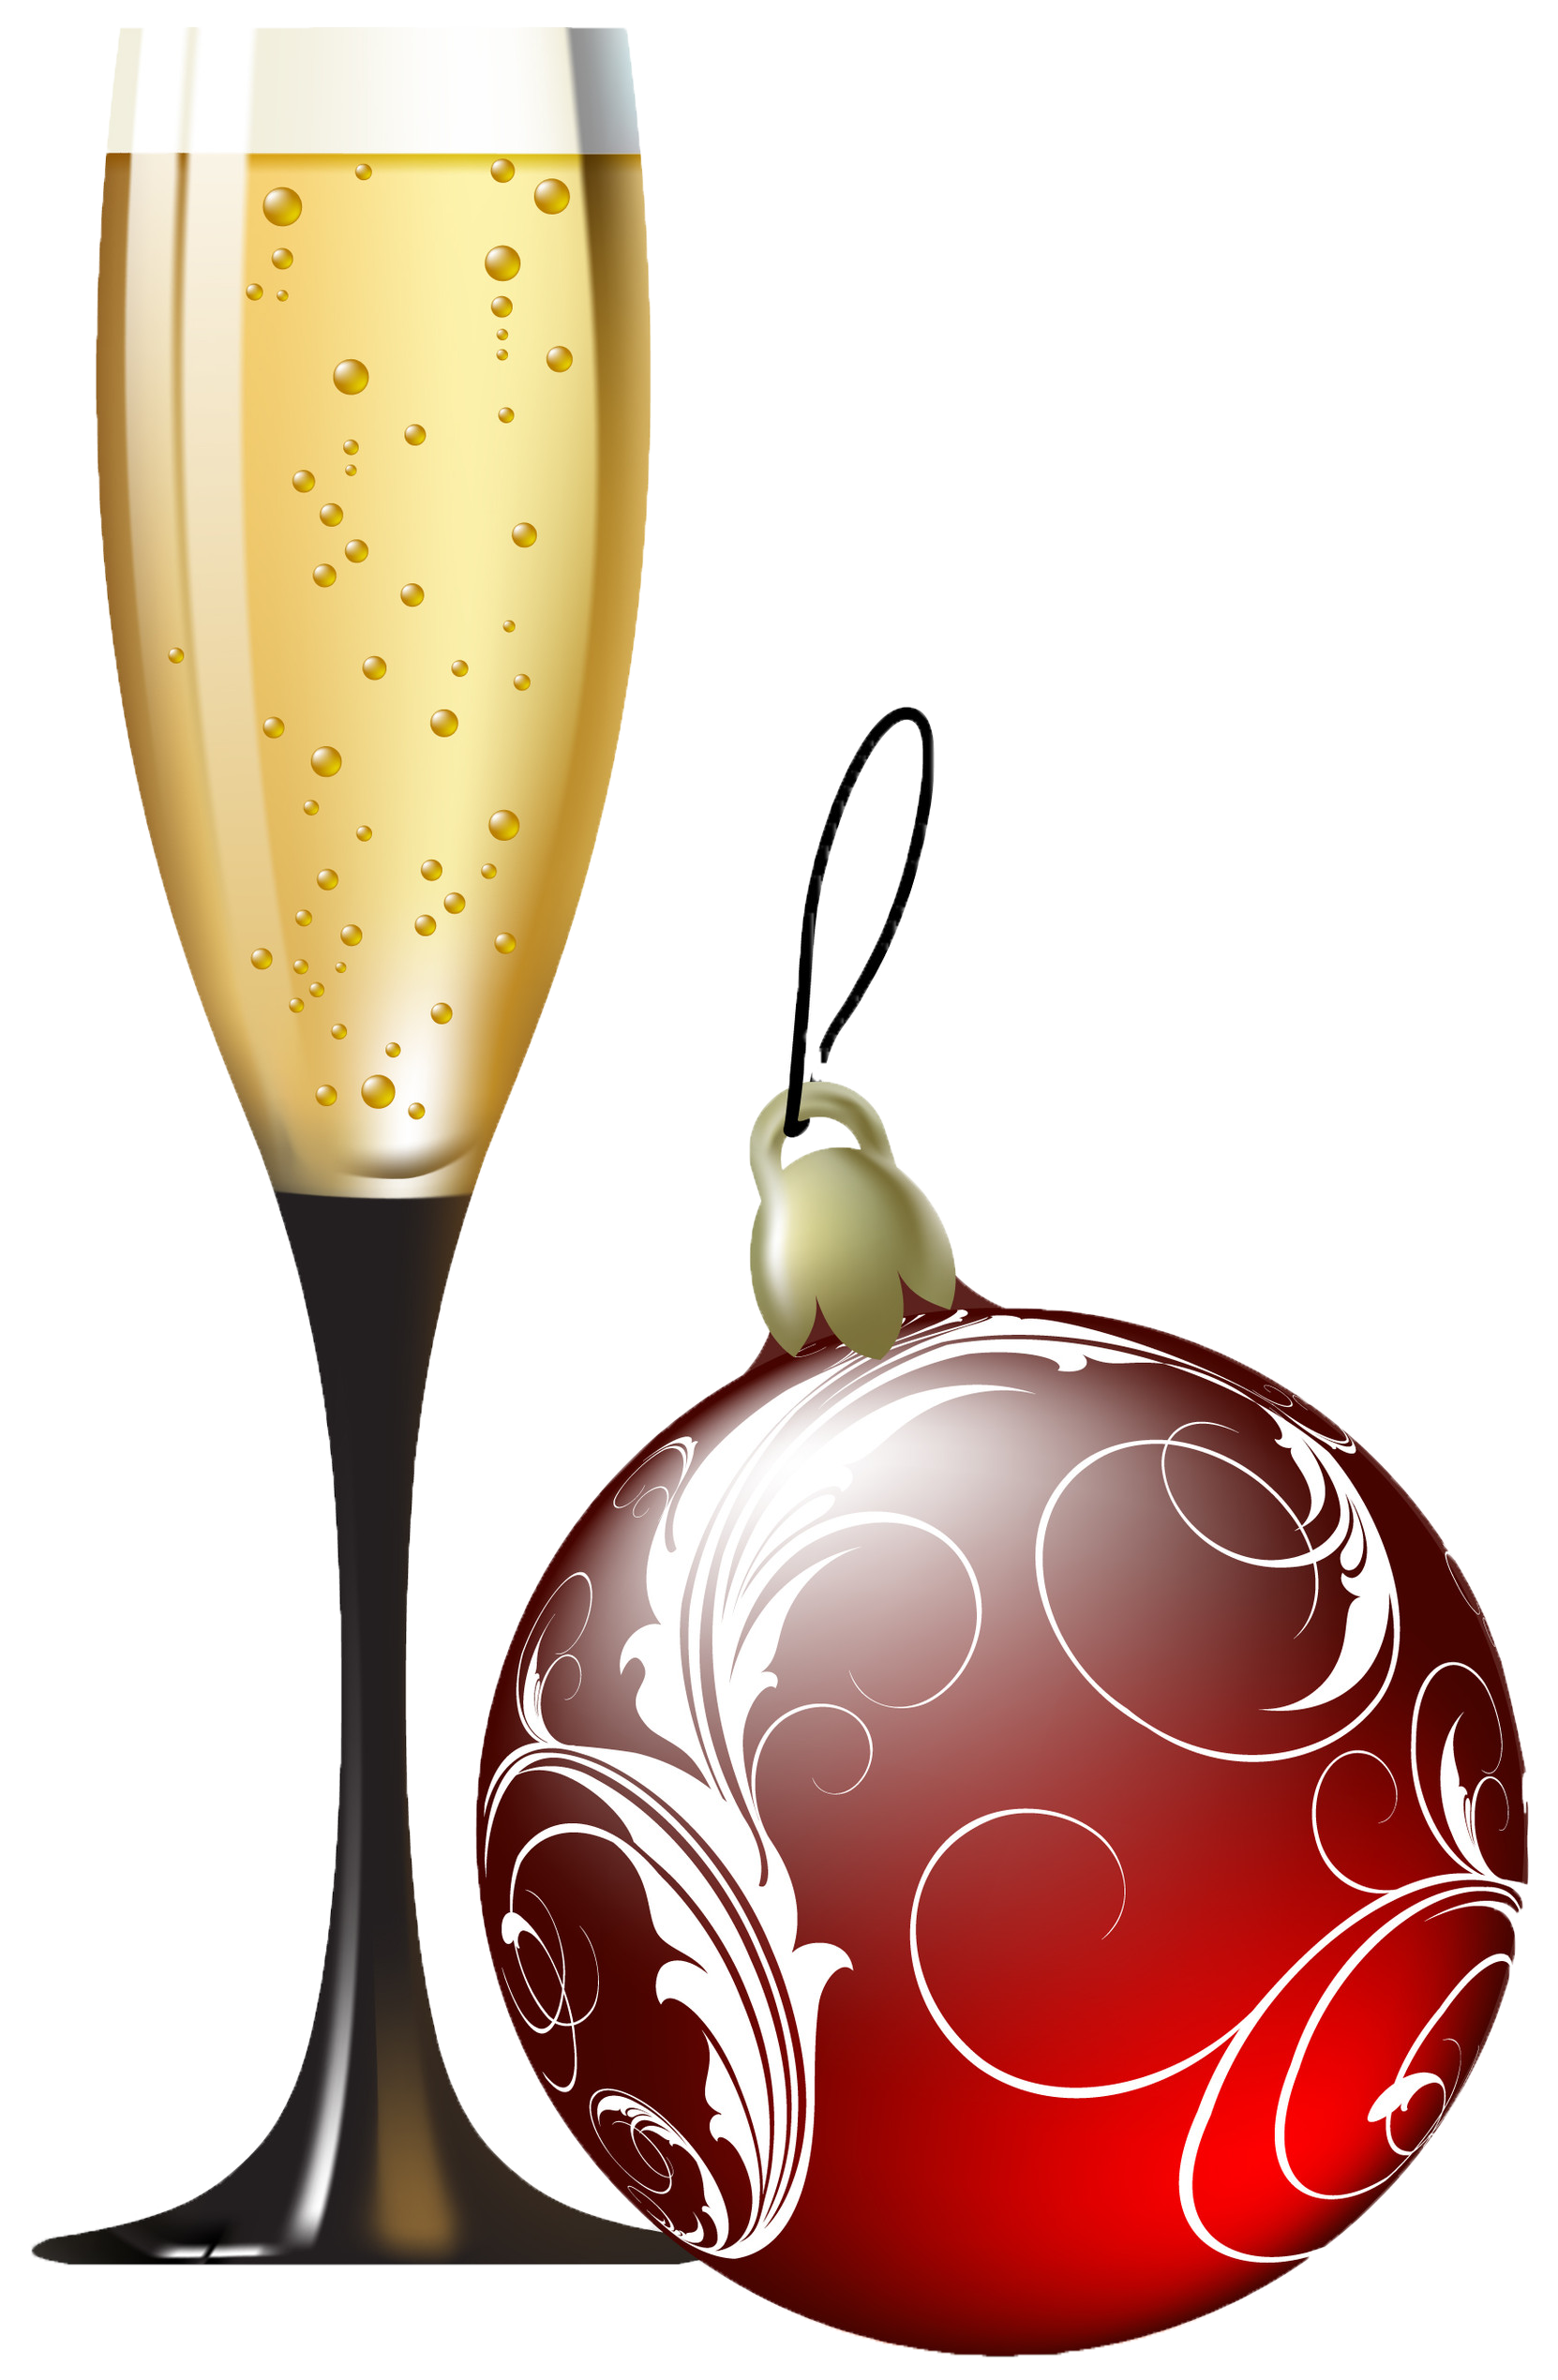 Champaign clipart holiday wine, Champaign holiday wine Transparent.